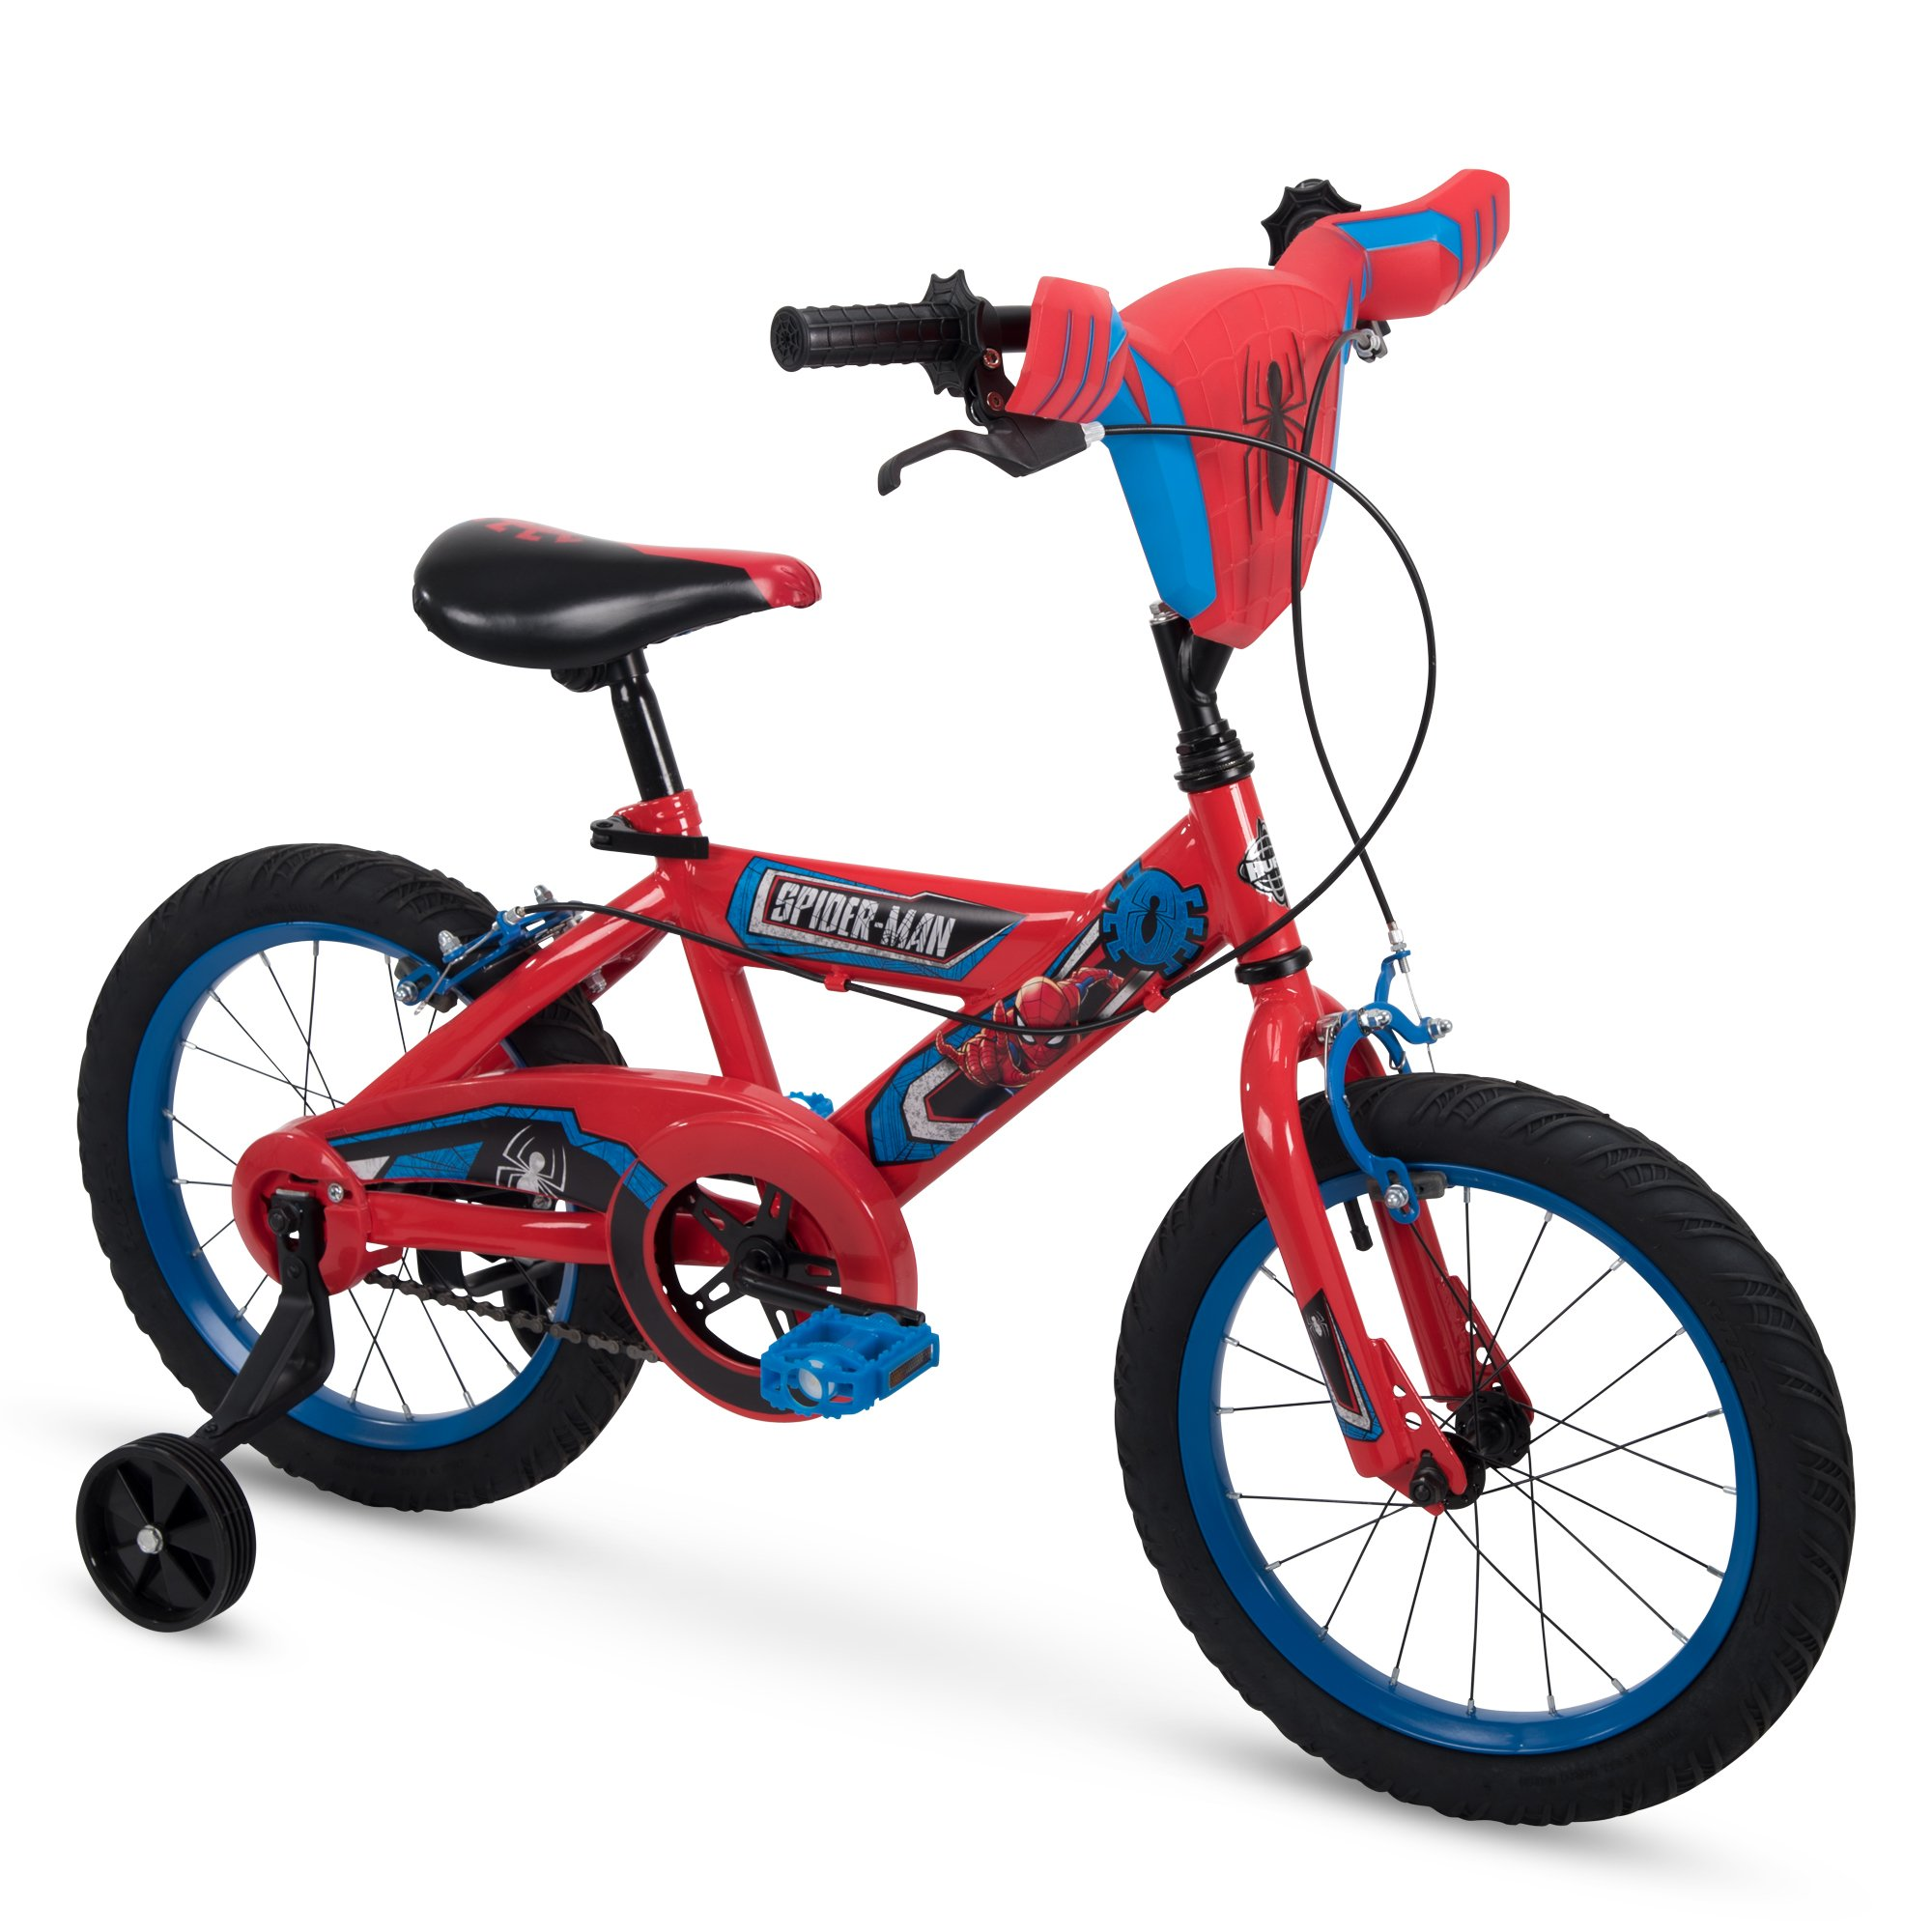 """Huffy Bicycle Company 16"""" Marvel Spider-Man Boys Bike by Huffy, Handlebar Plaque, Red product image"""